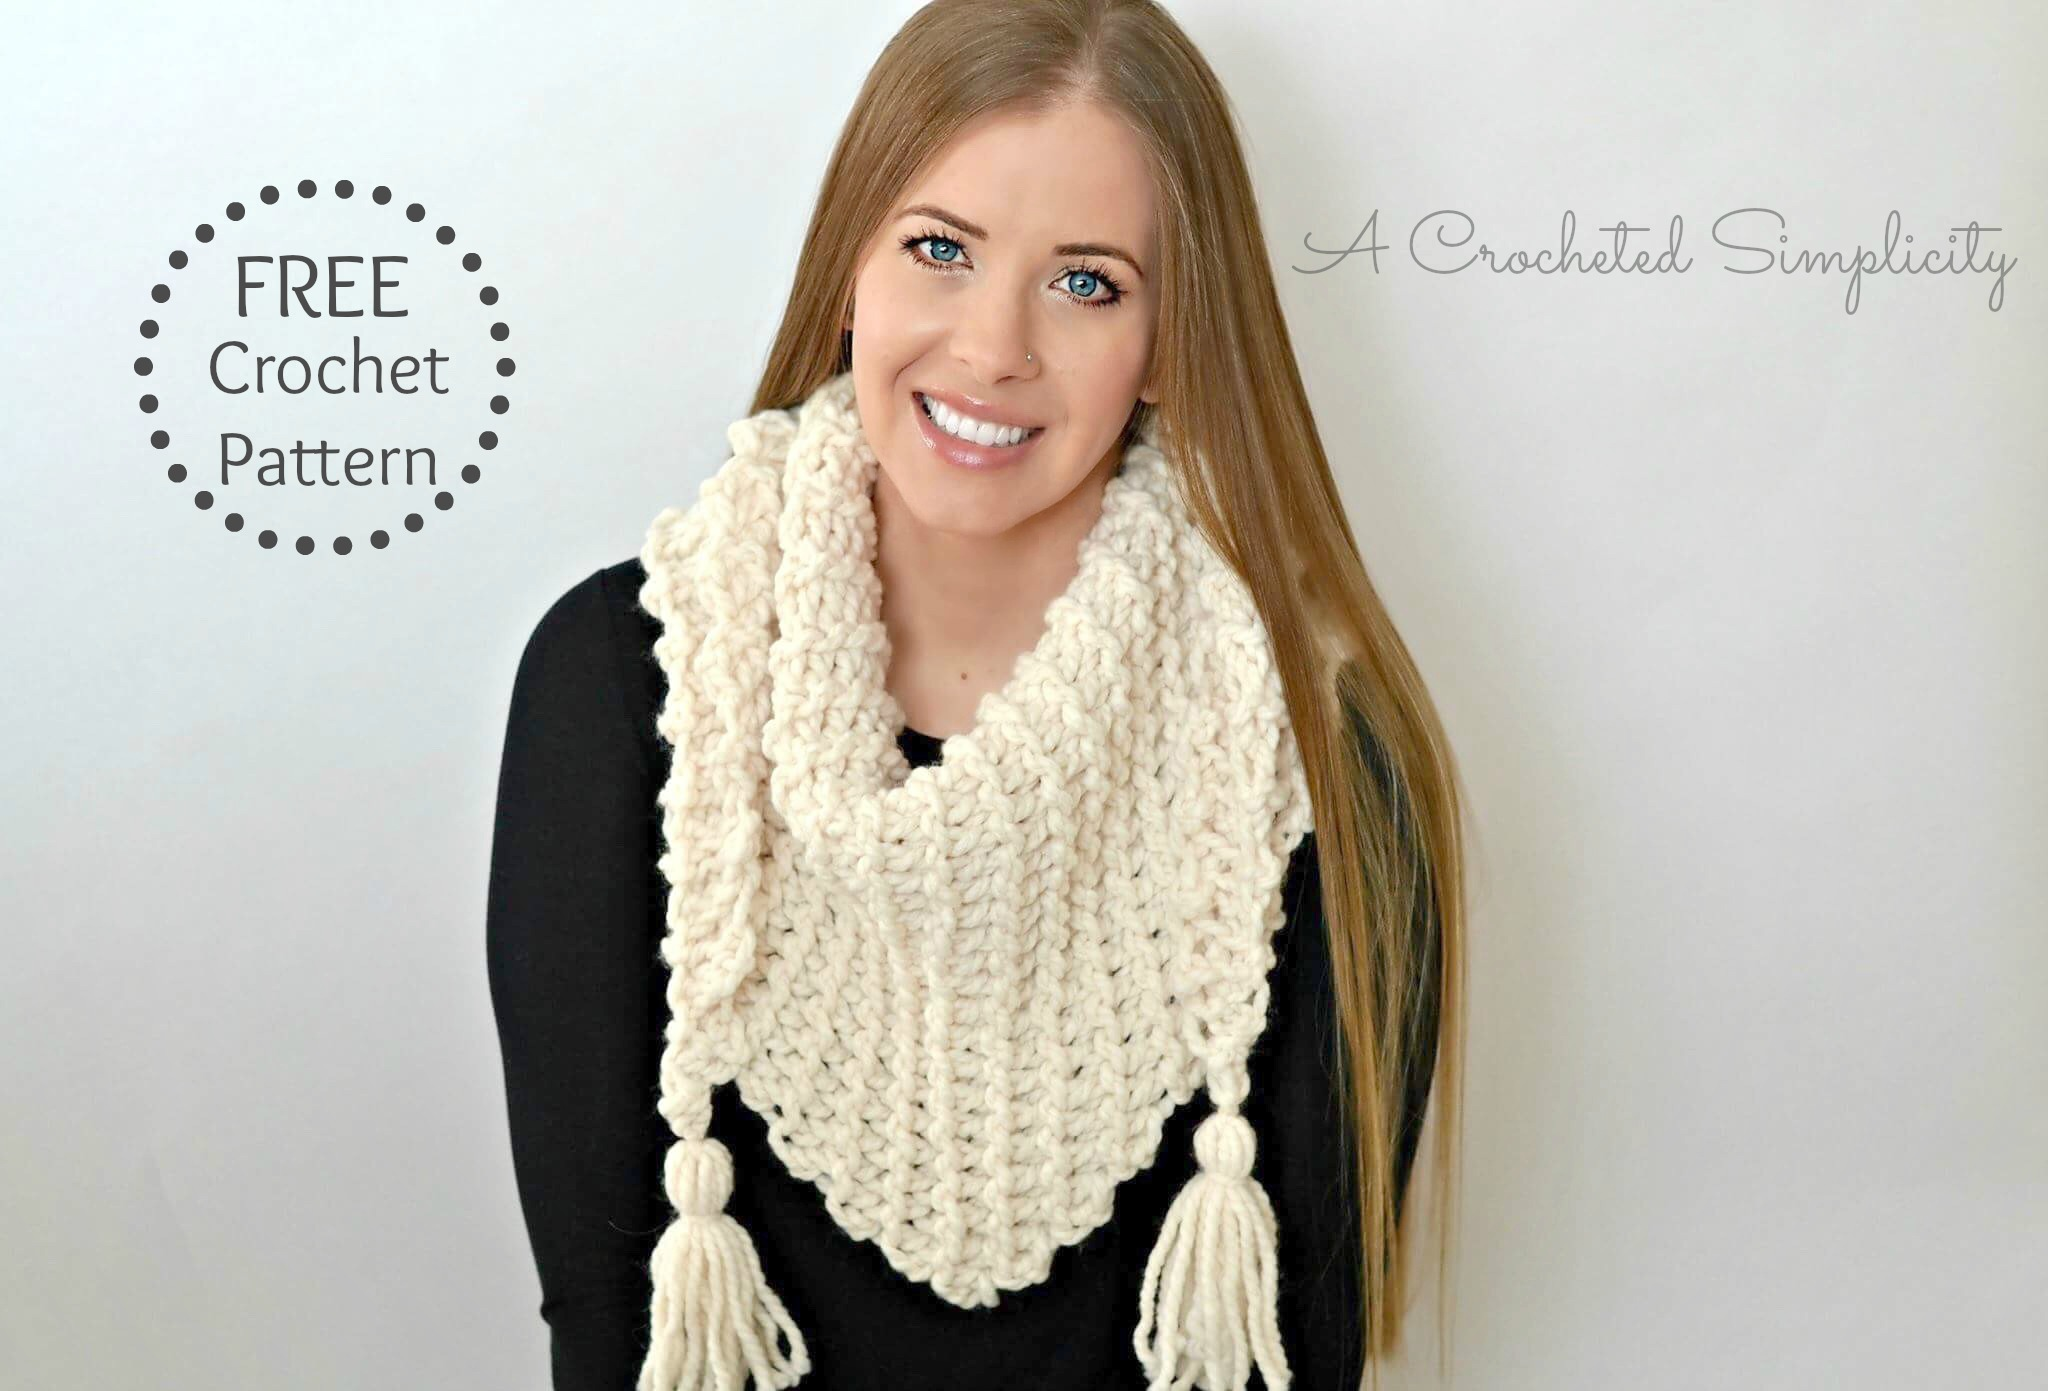 Free Patterns - A Crocheted Simplicity